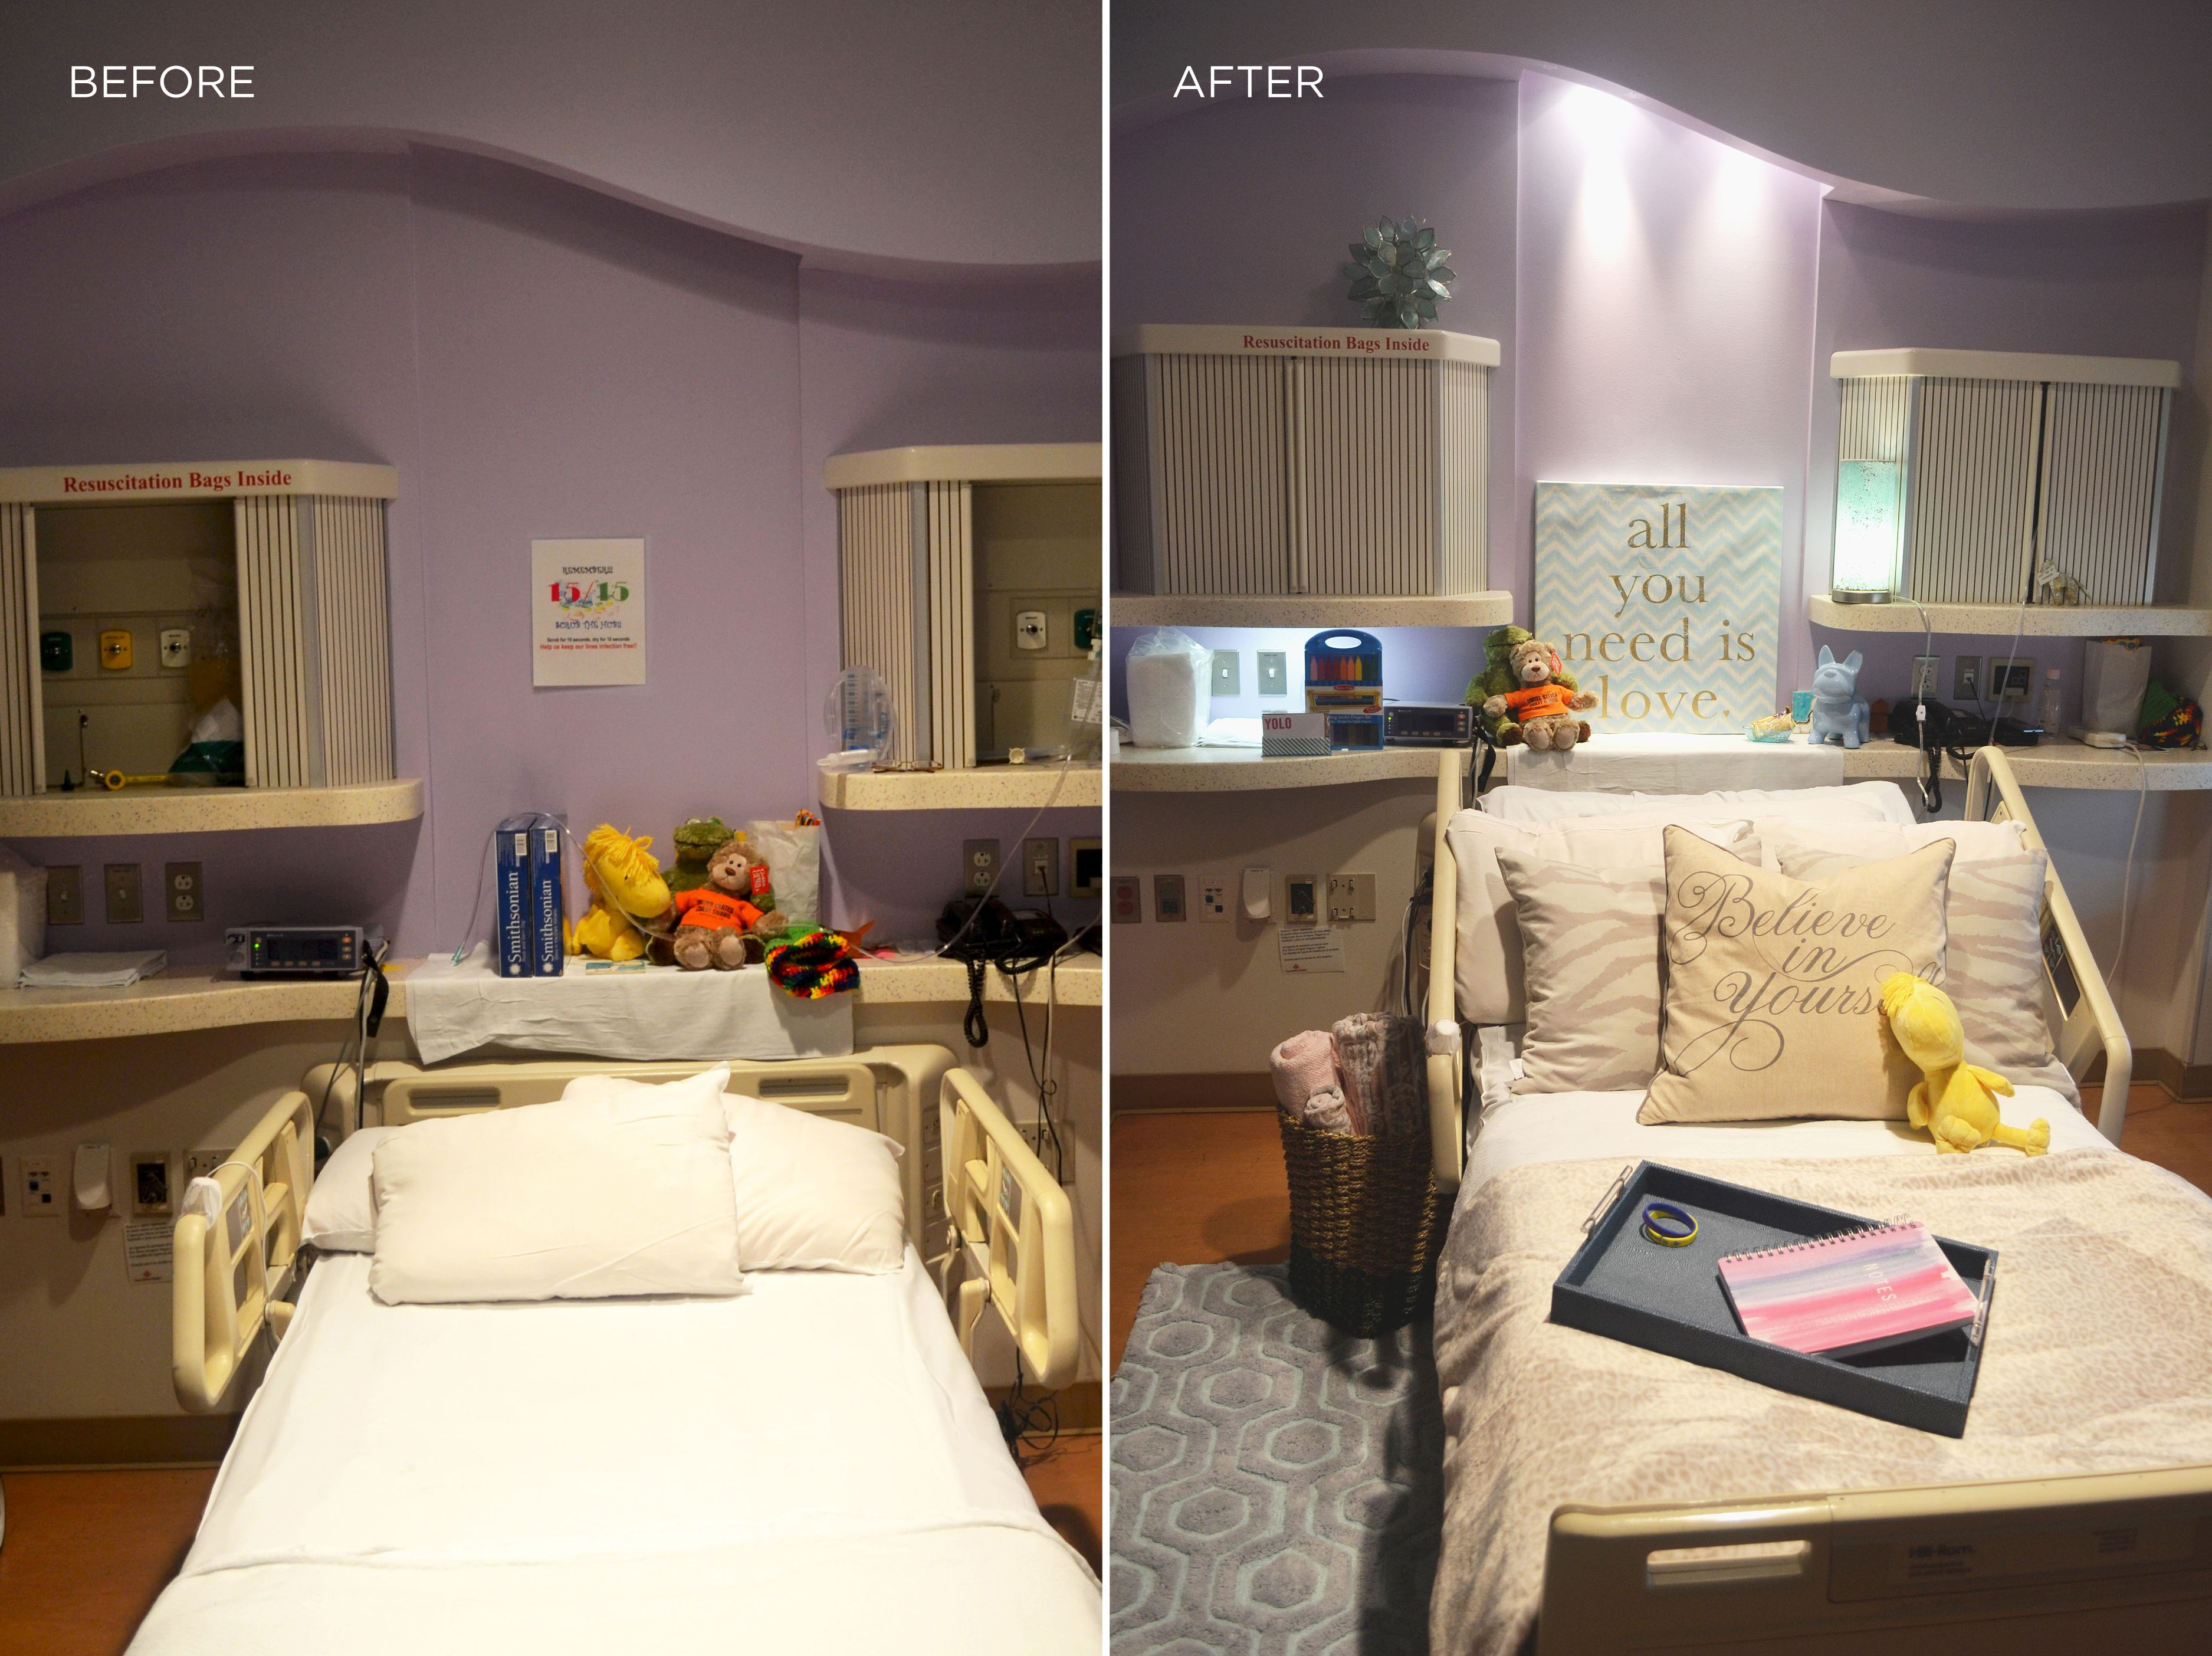 Before After A Teen S Hospital Room Gets And Uplifting Makeover Pngtree offers hd hospital room background images for free download. hospital room gets and uplifting makeover